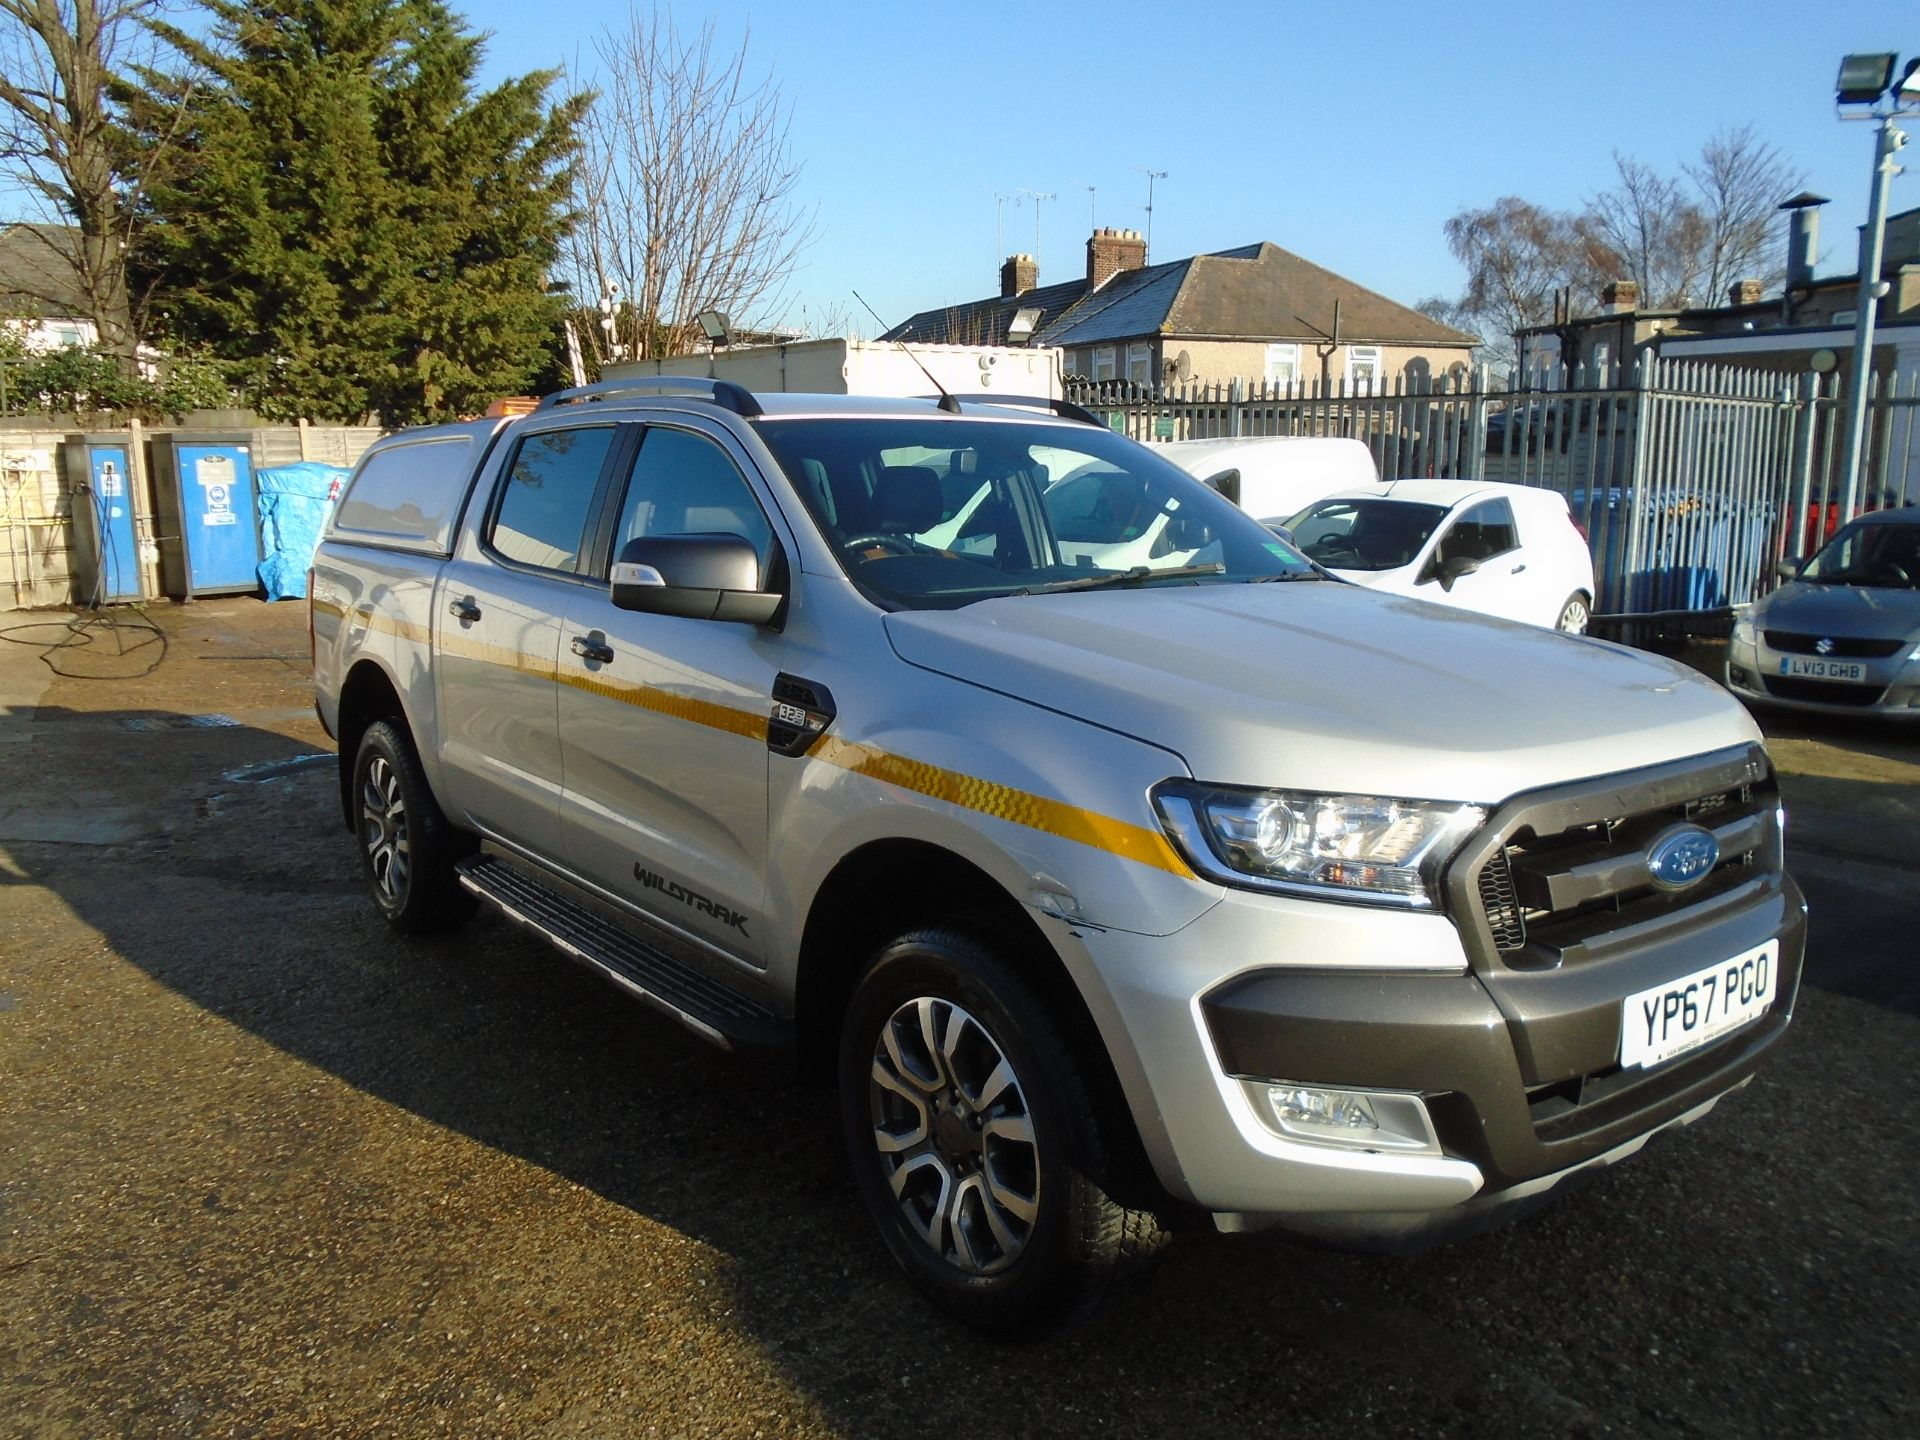 2017 Ford Ranger Pick Up Double Cab Wildtrak 3.2 Tdci 200 (YP67PGO)